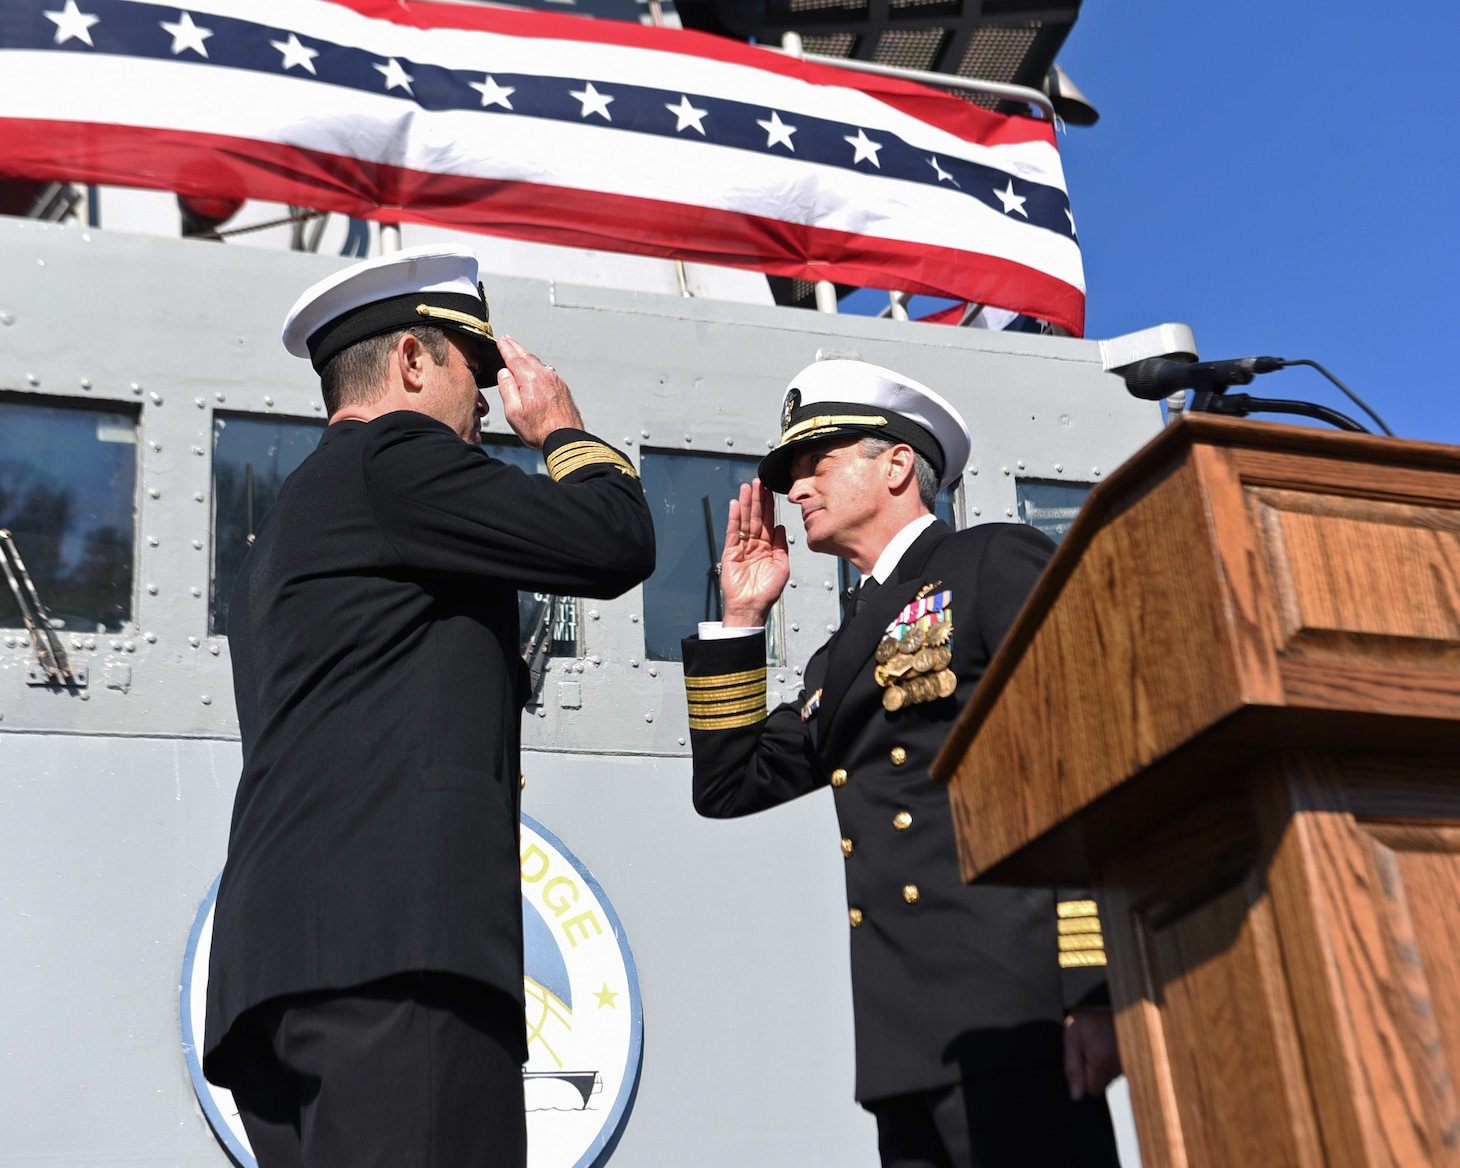 YOKOSUKA, Japan (Dec. 12, 2019) Outgoing Commanding Officer Capt. Eric J. Anduze, a native of Manati, Puerto Rico, relinquishes command of 7th Fleet flagship USS Blue Ridge (LCC 19) to Capt. Craig Sicola, from Dallas, during a change of command ceremony aboard. Blue Ridge, part of Expeditionary Strike Group 7, is the oldest operational ship in the Navy and, as 7th Fleet command ship, actively works to foster relationships with allies and partners in support of security and stability within the Indo-Pacific Region.